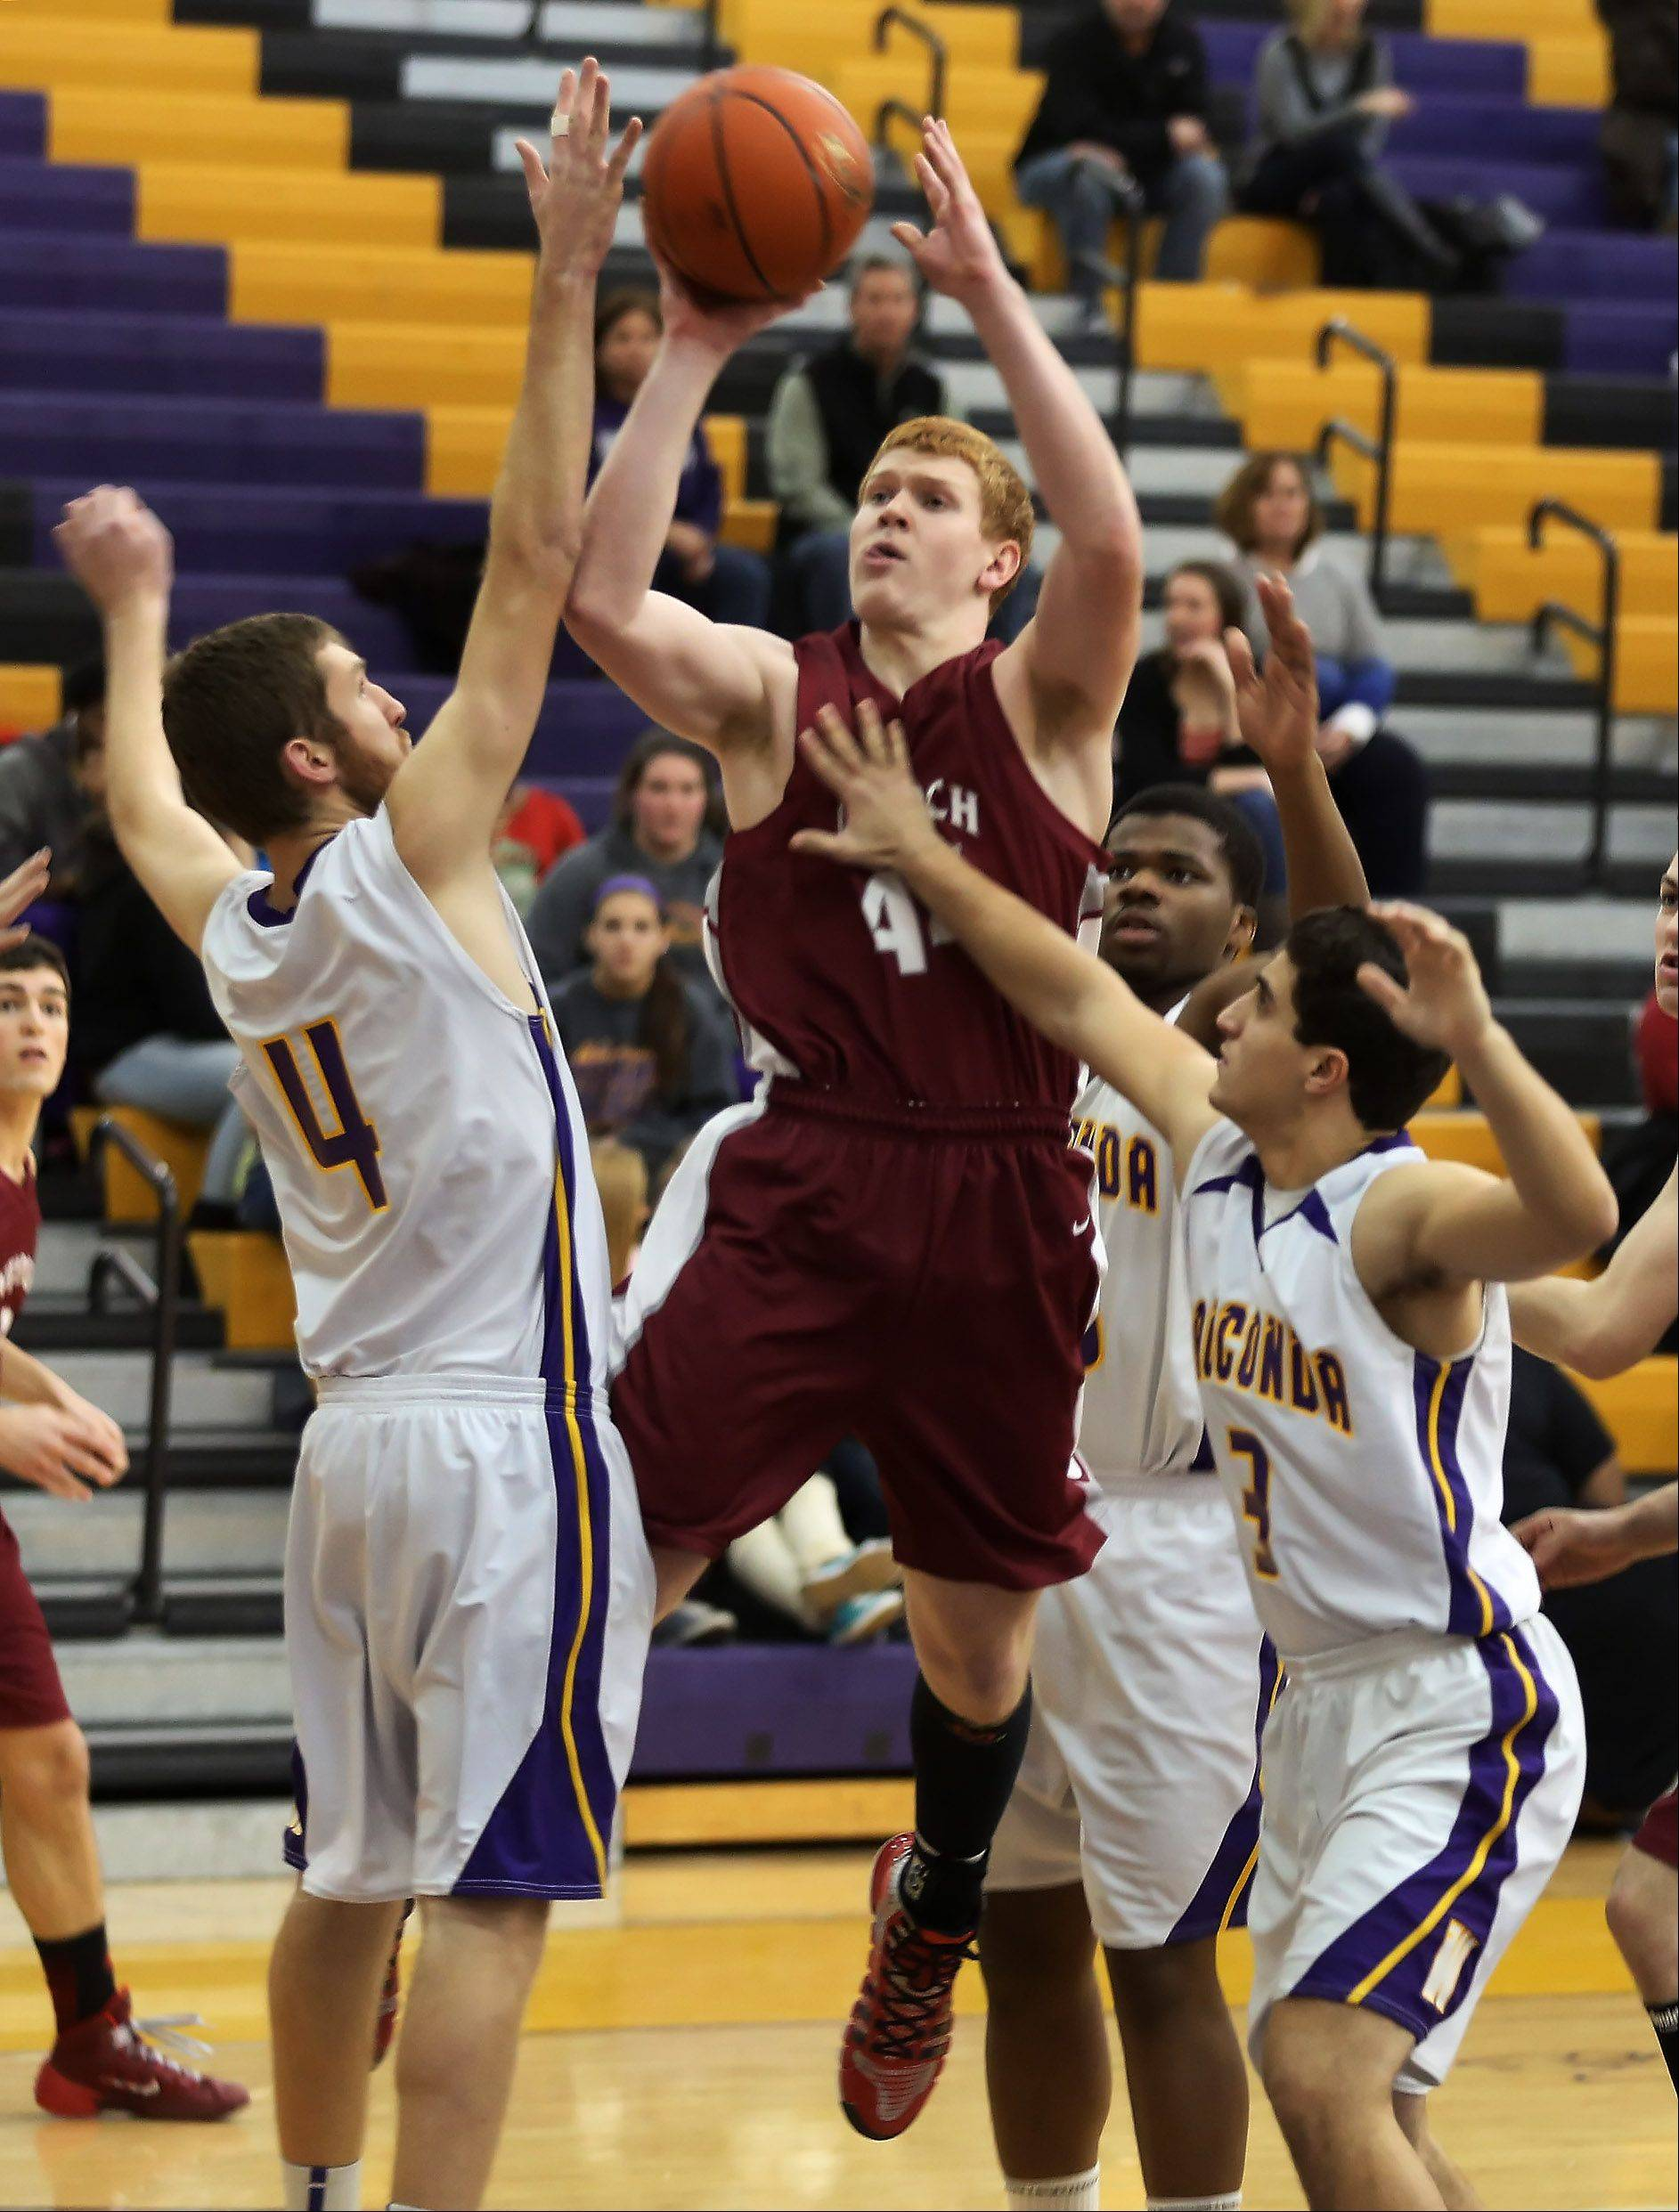 Antioch forward Jack Kovach goes up for a shot over Wauconda players Ricky Sidlowski, left, and Joey Lovelle.